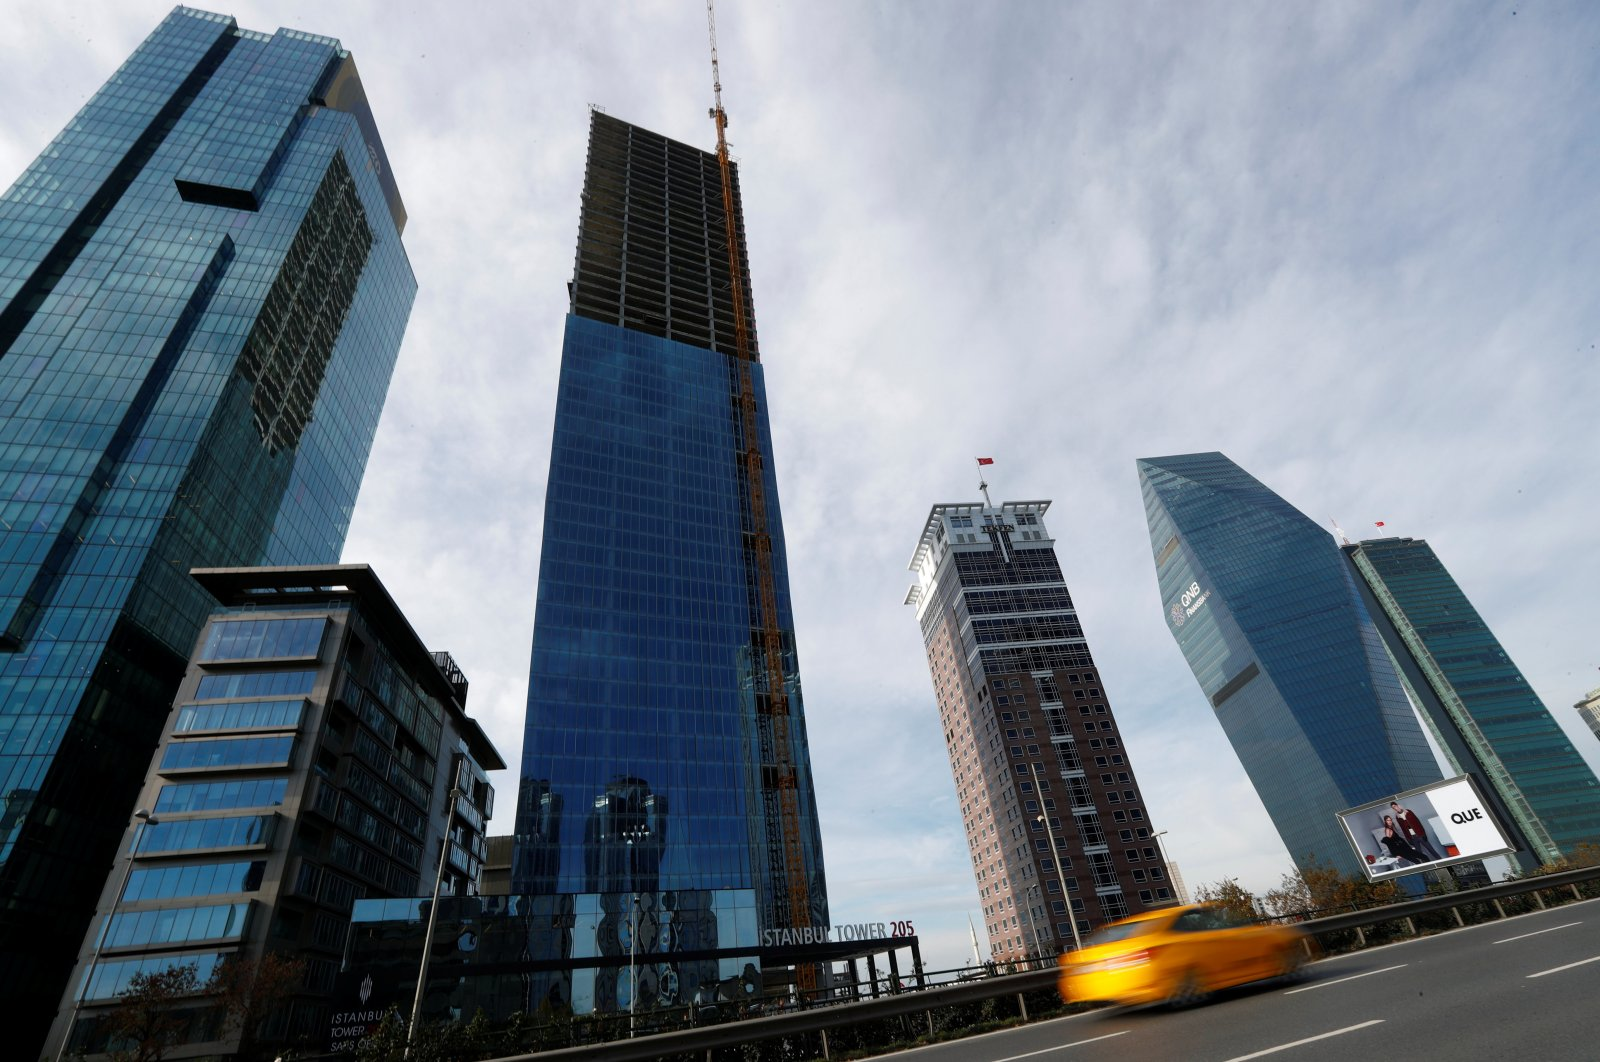 Skyscrapers are seen in the business and financial district of Levent, which comprises leading Turkish banks' and companies' headquarters, in Istanbul, Turkey, Nov.30, 2017. (Reuters Photo)